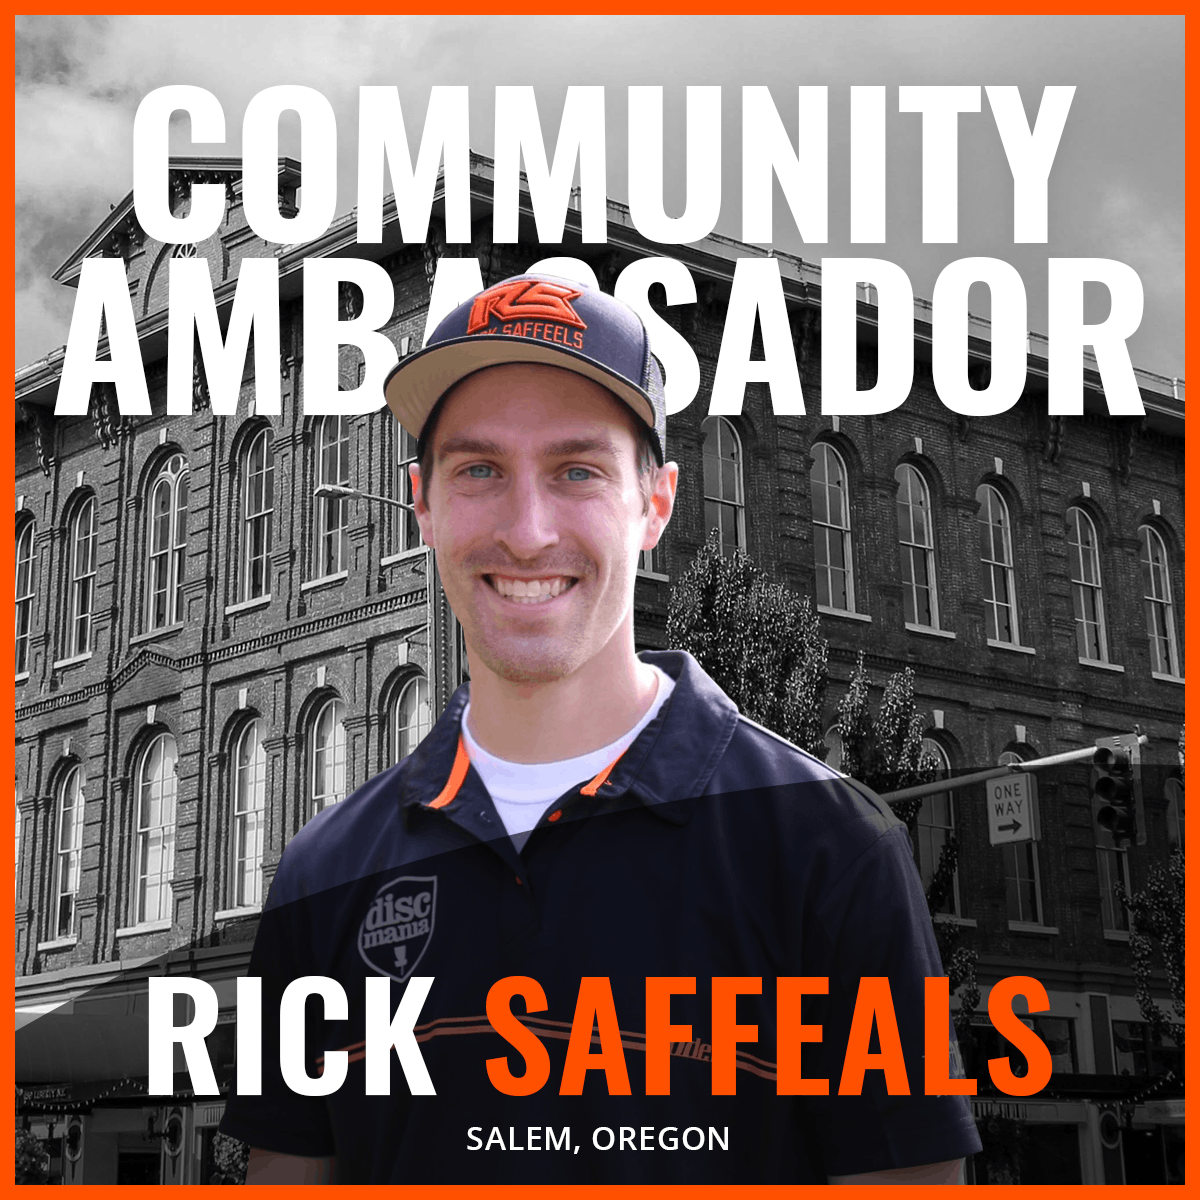 An Image of Rick Saffeals Dude Clothing Community Ambassador